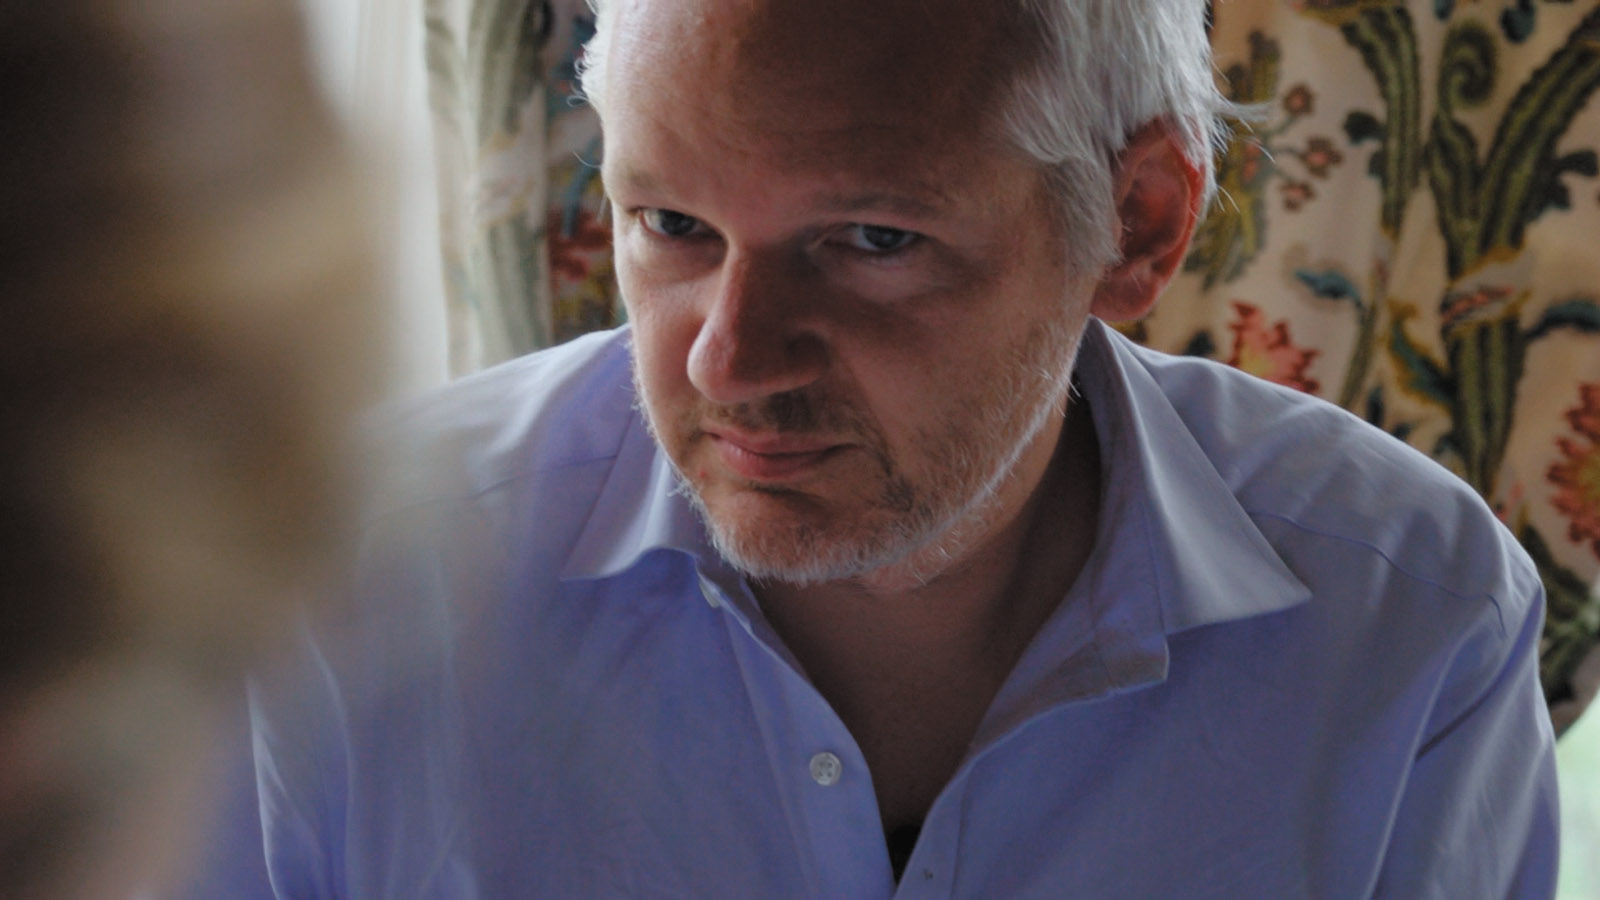 The Nihilism of Julian Assange